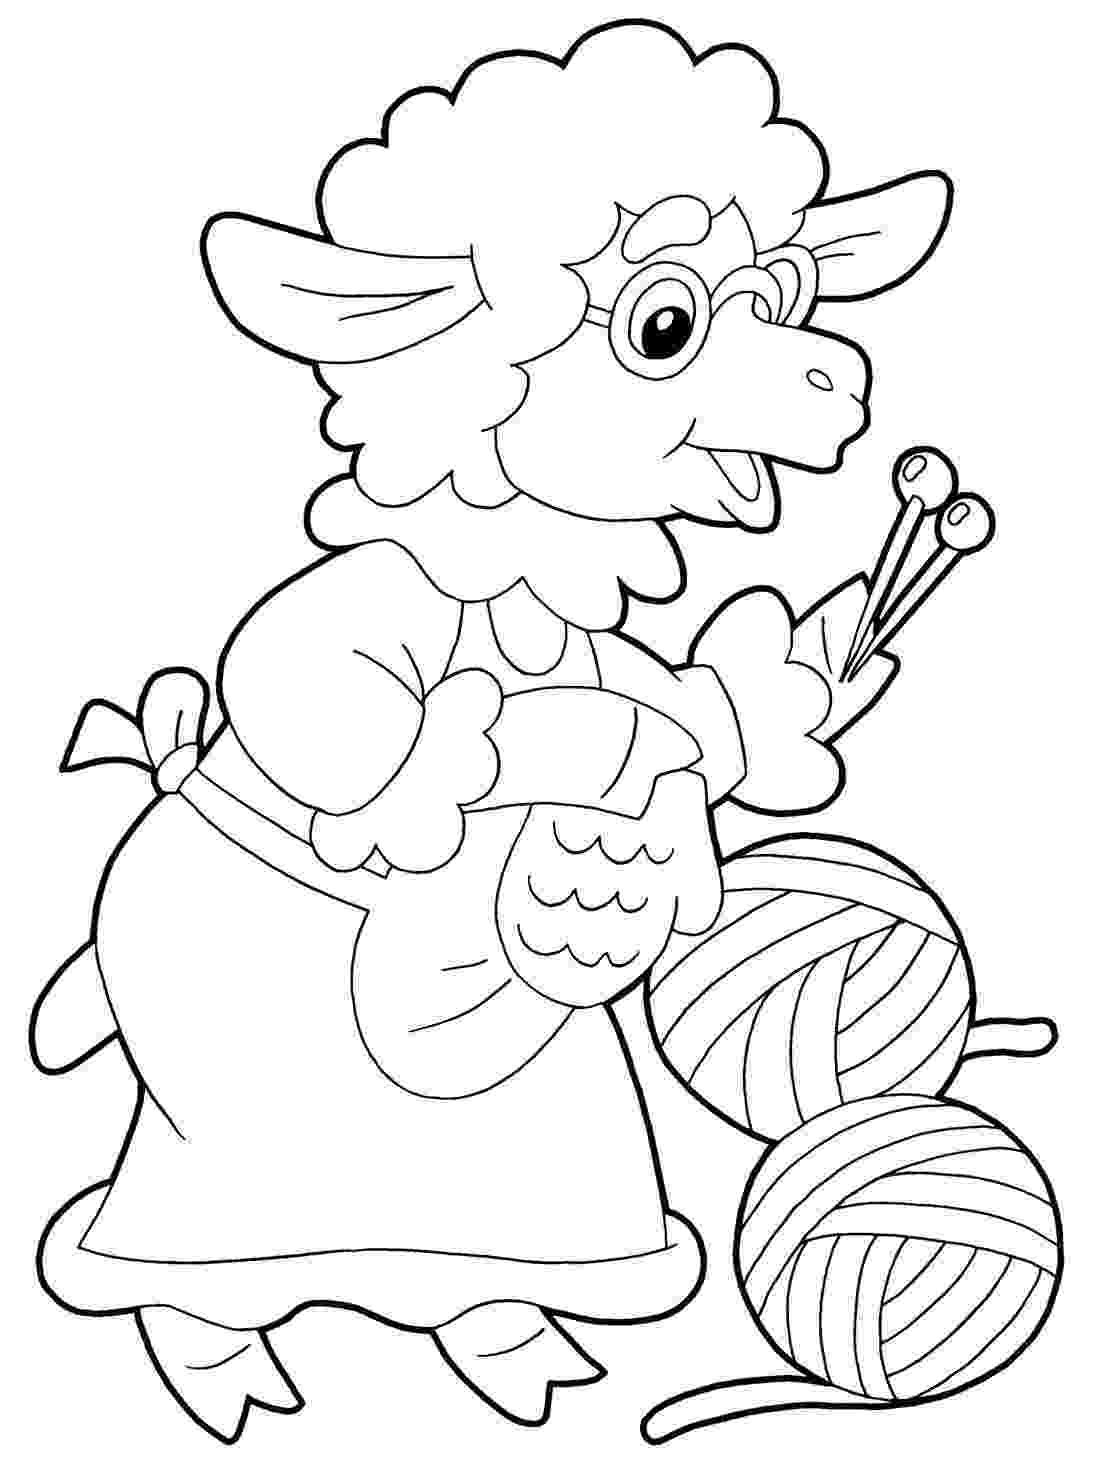 coloring paghes sheep coloring pages to print year of sheep 2015 paghes coloring